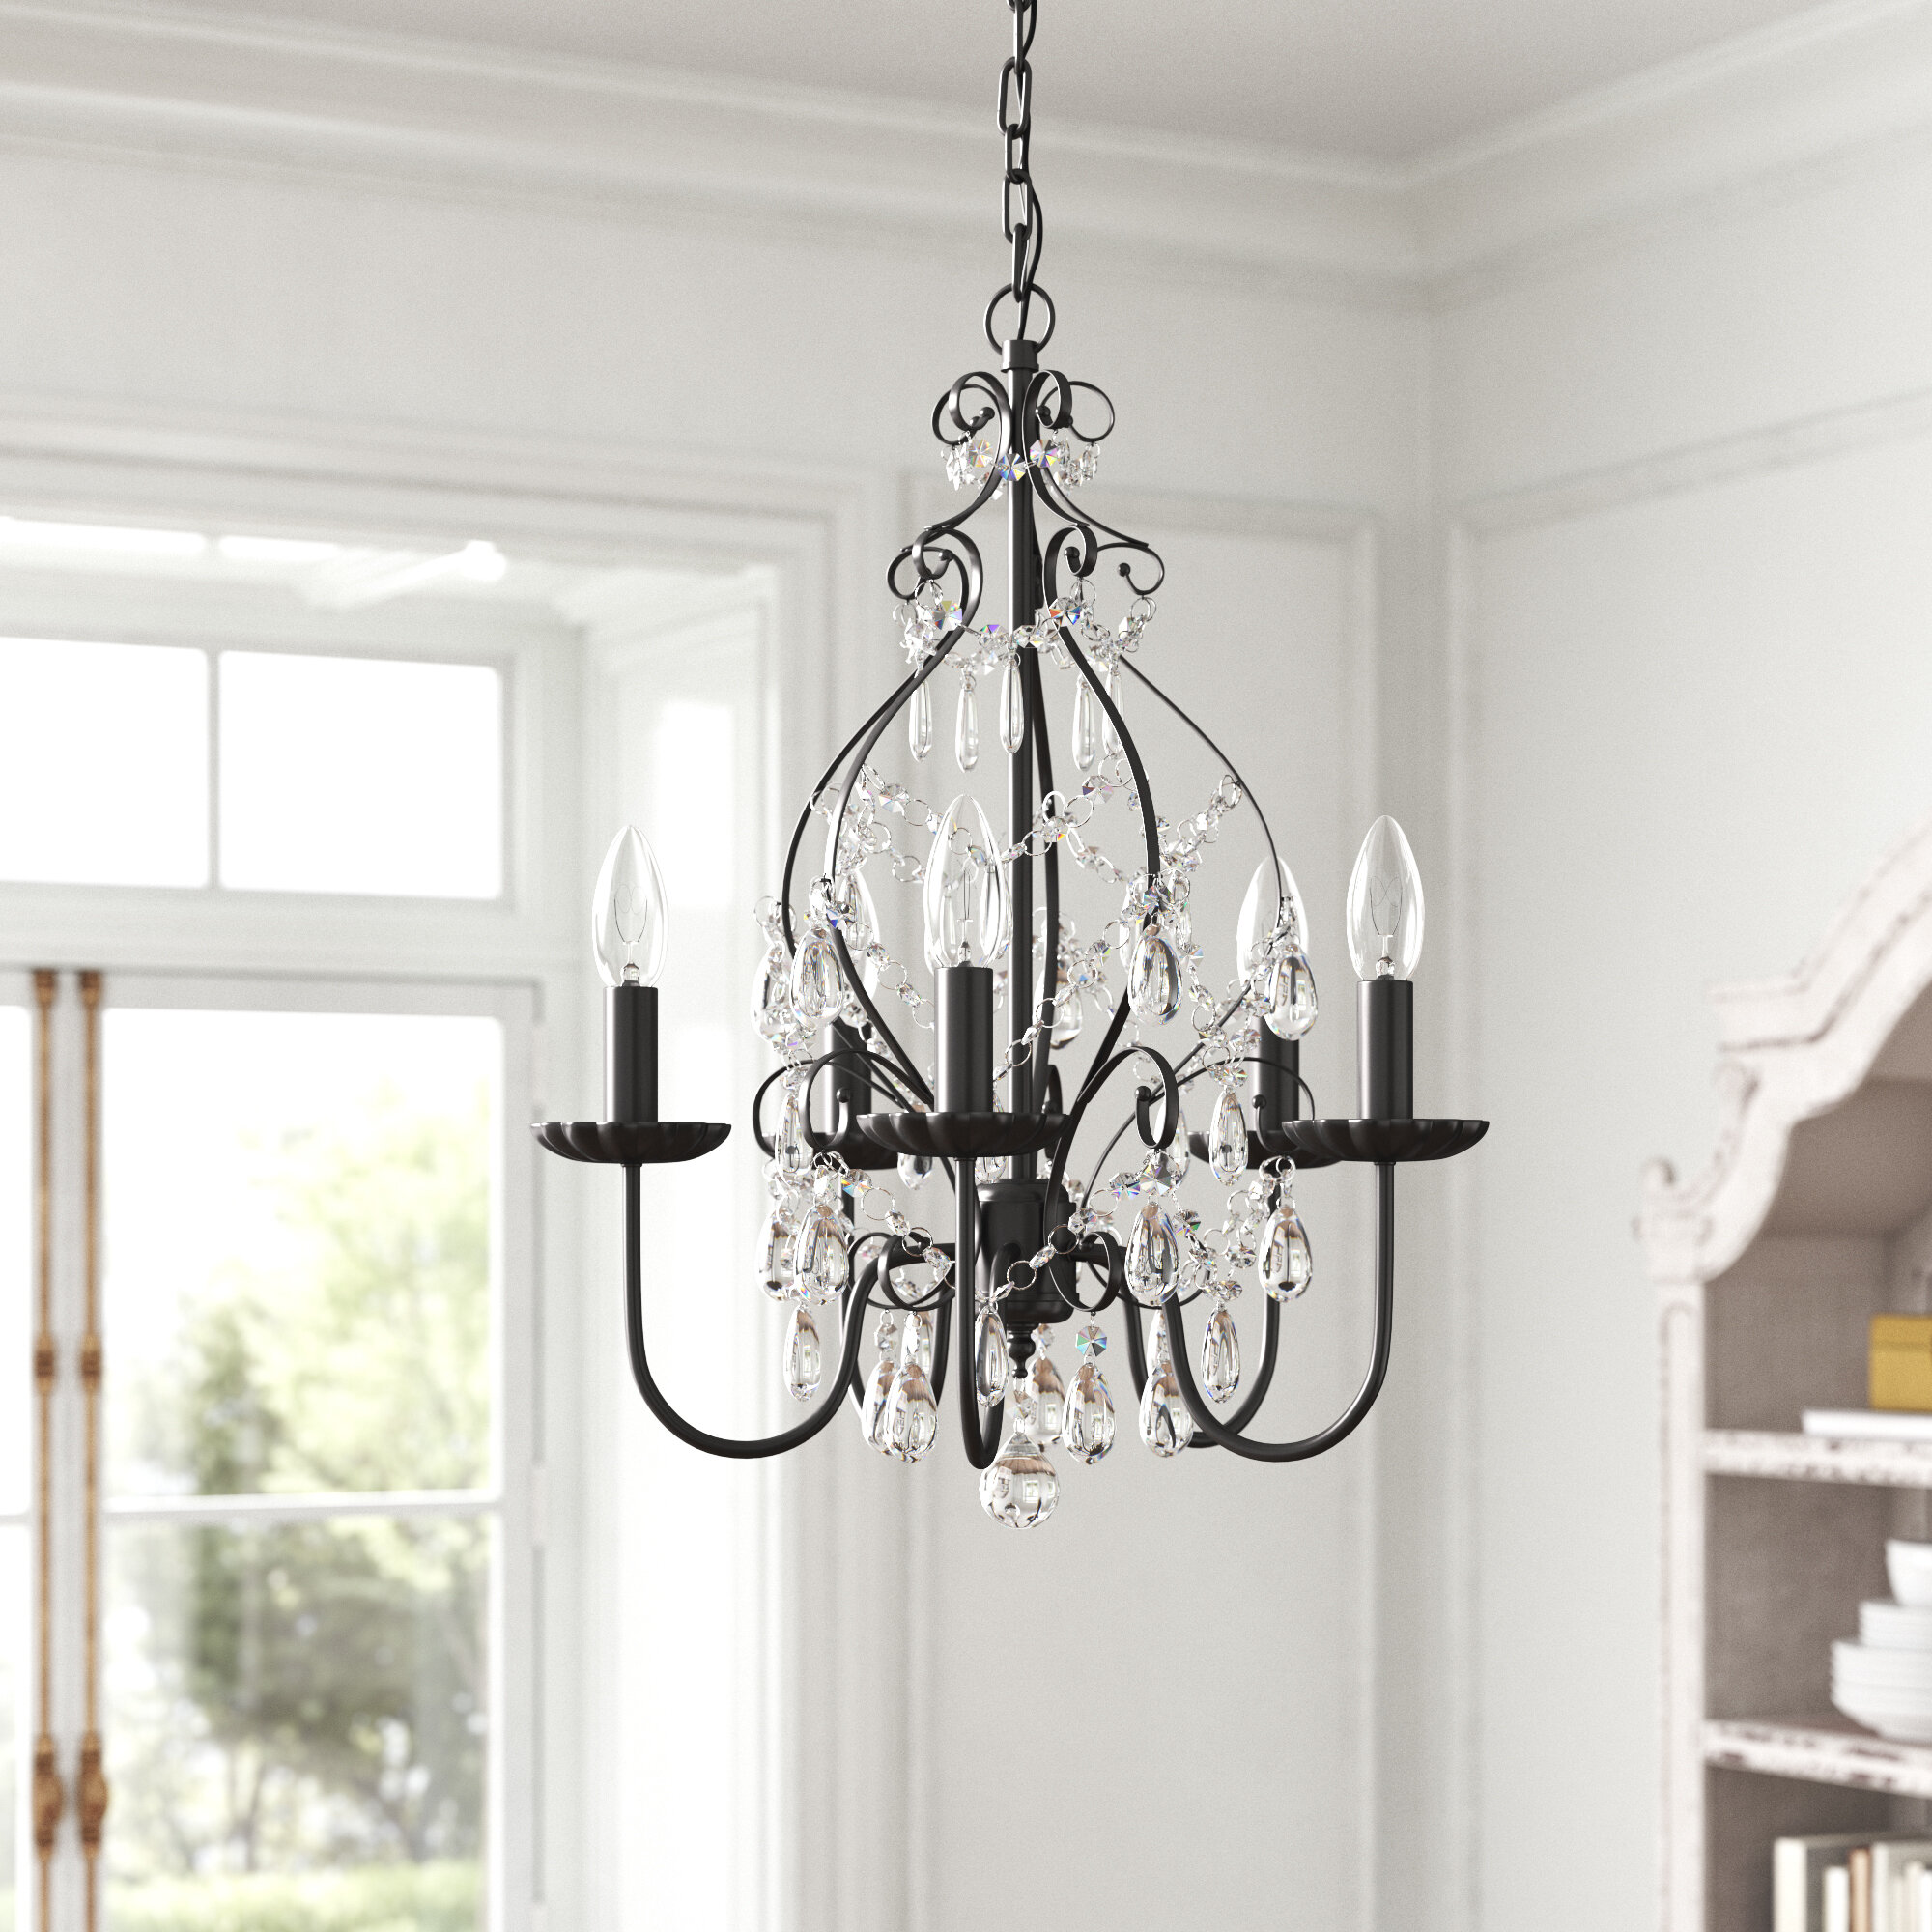 Kelly Clarkson Home Julianne 5 Light Candle Style Classic Chandelier Reviews Wayfair